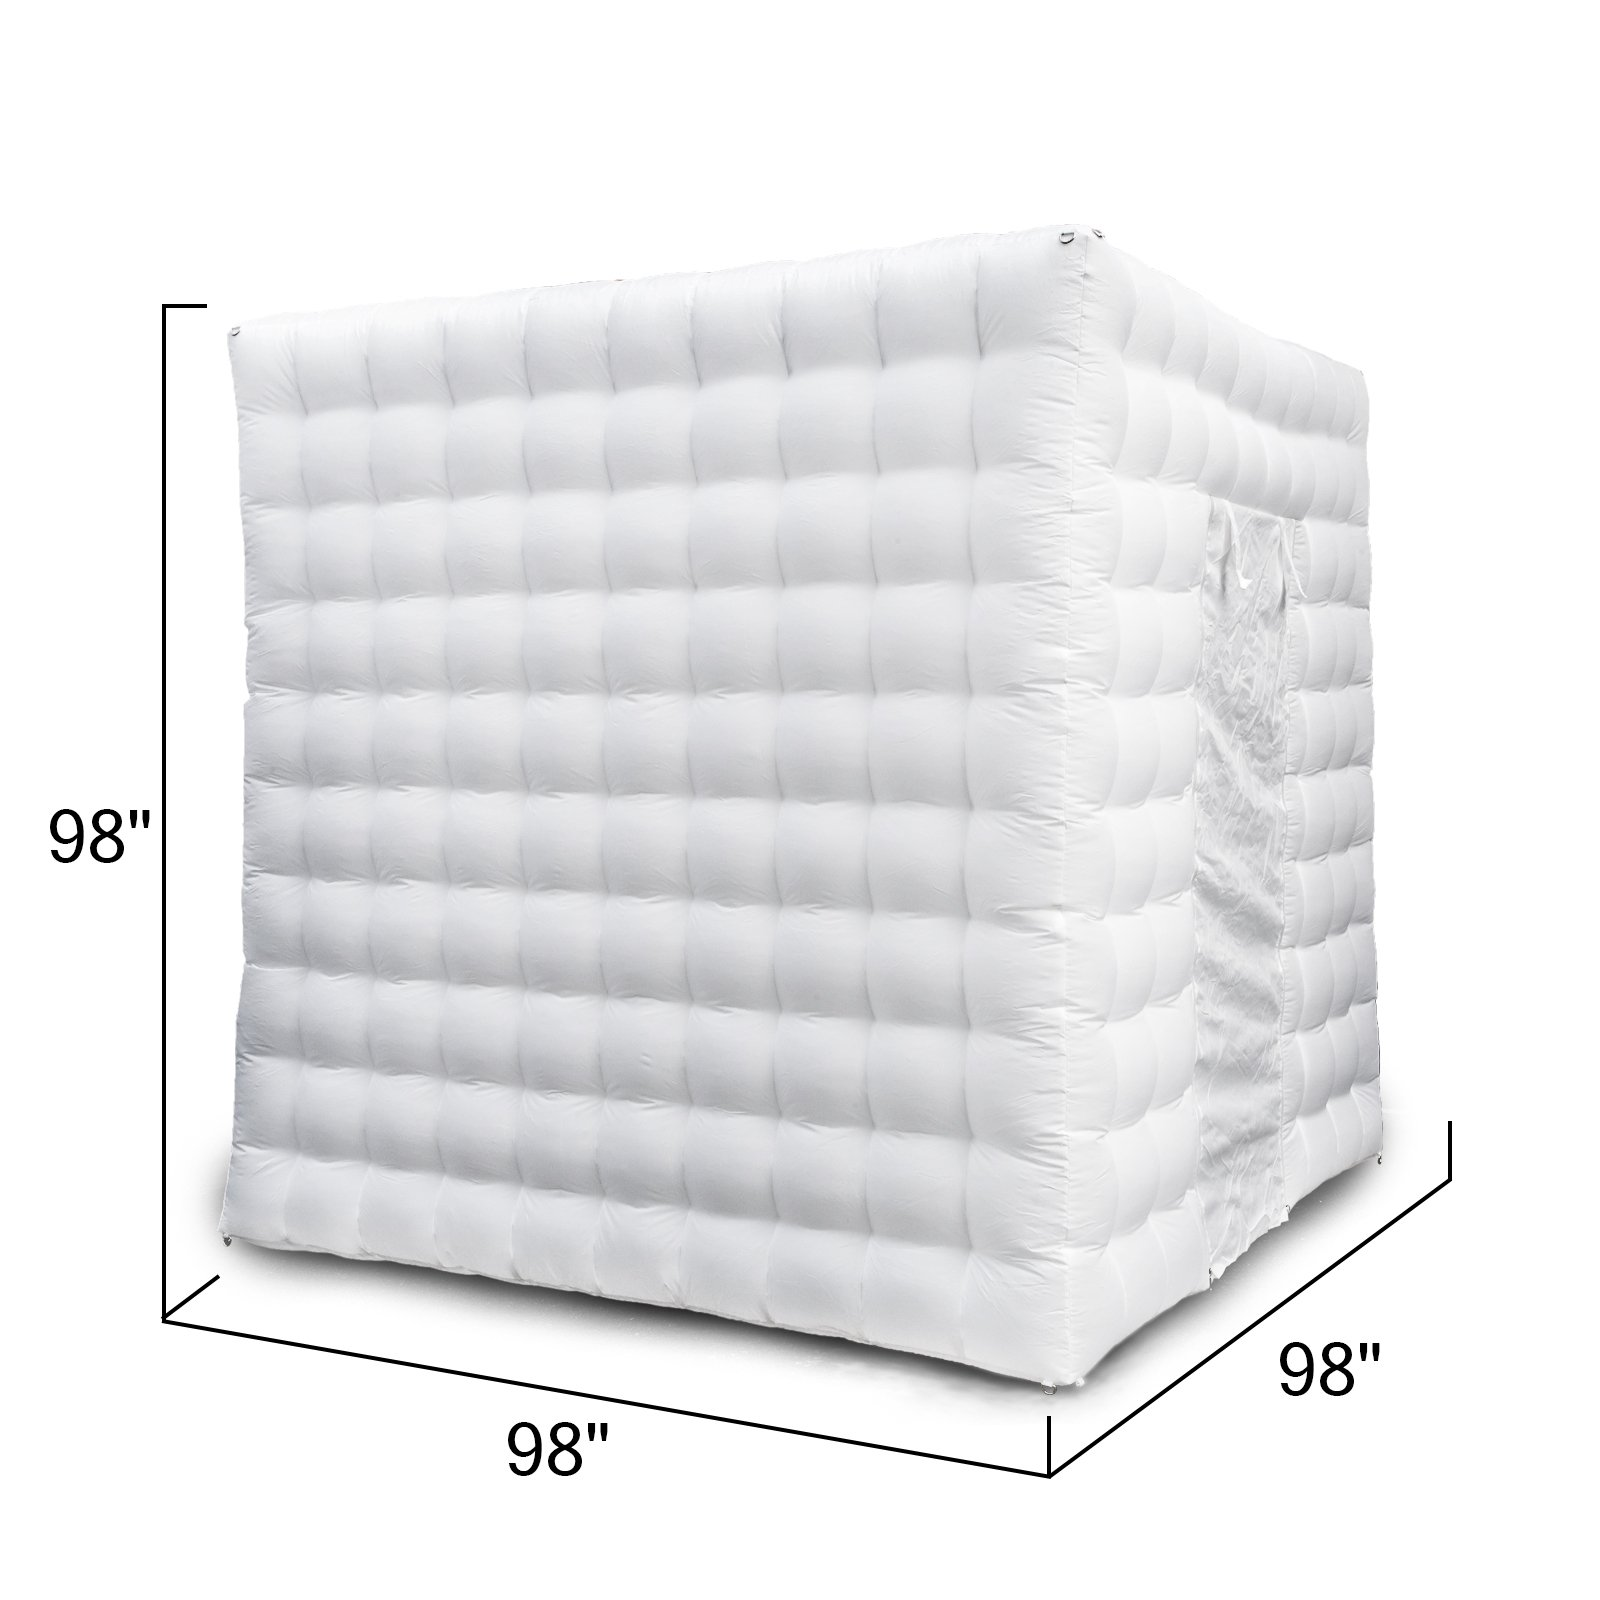 Happybuy 8.2X 8.2ft Inflatable Portable LED Lights Photo Booth 2 Doors W/Fan 110V US Plug by Happybuy (Image #3)